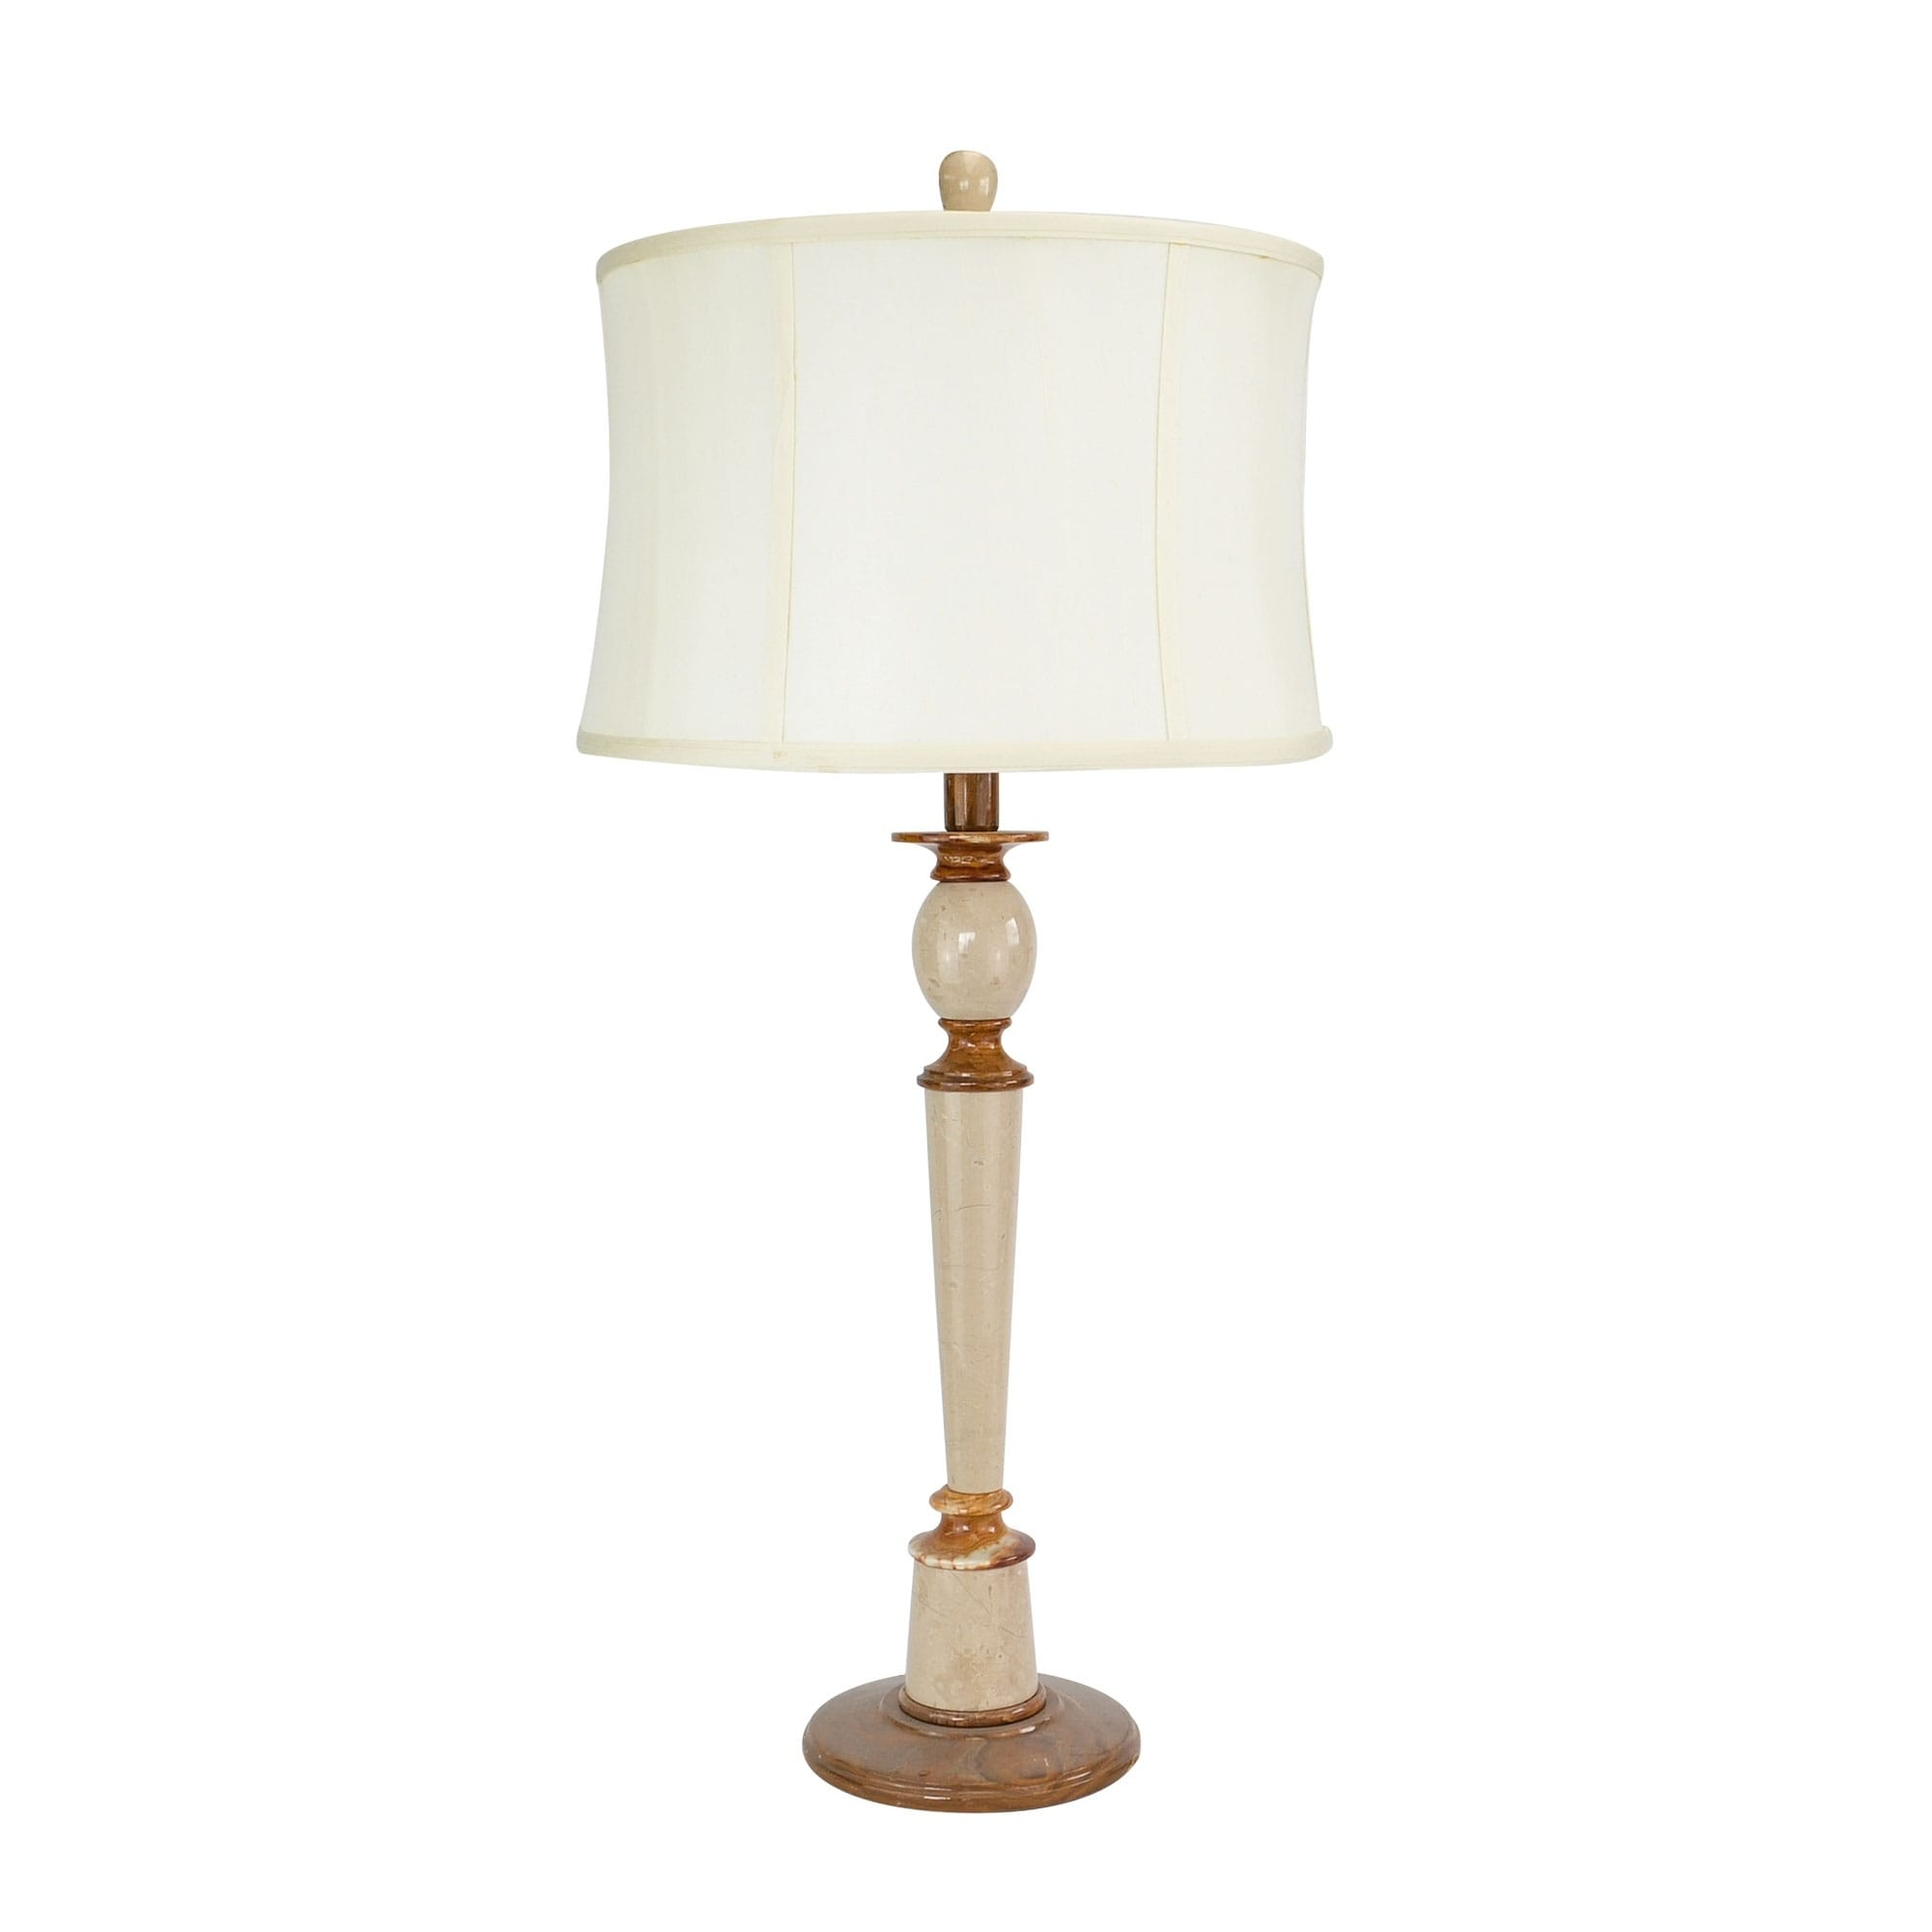 31 Tall Marble Table Lamp Plumefall With Chartreuse Finish White Linen Shade On Sale Overstock 19456764